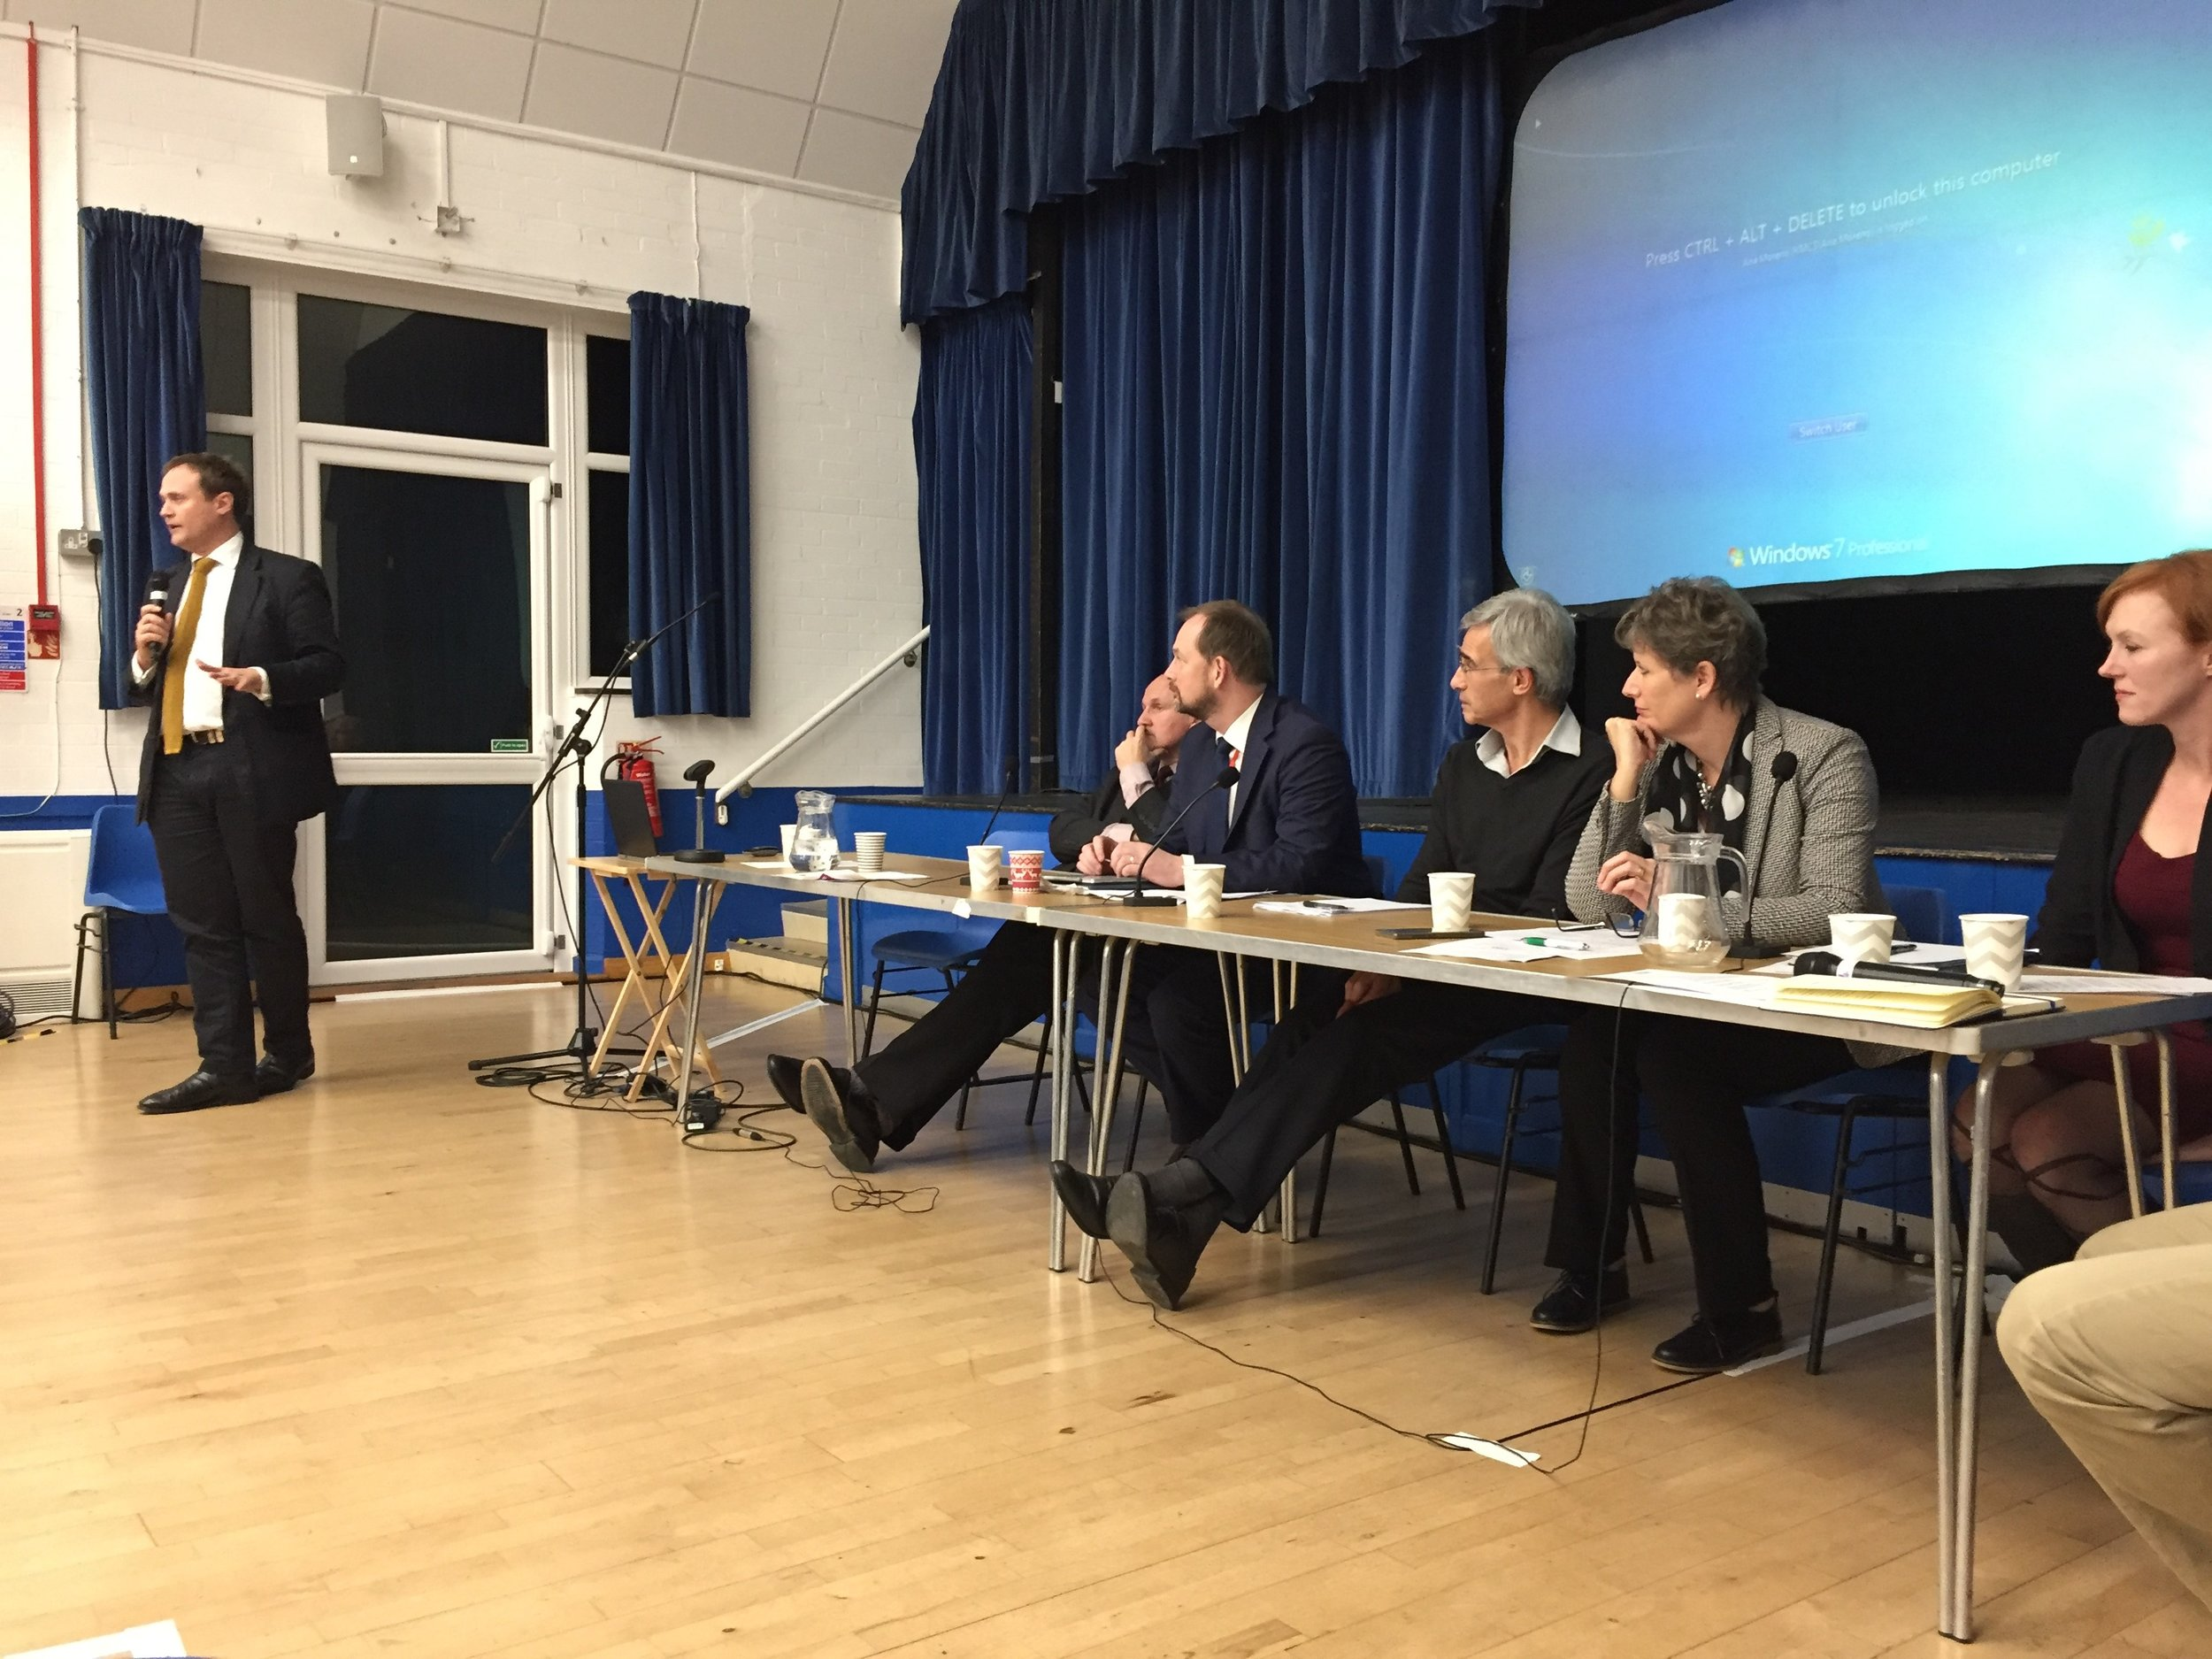 edenbridge medical centre meeting.jpg